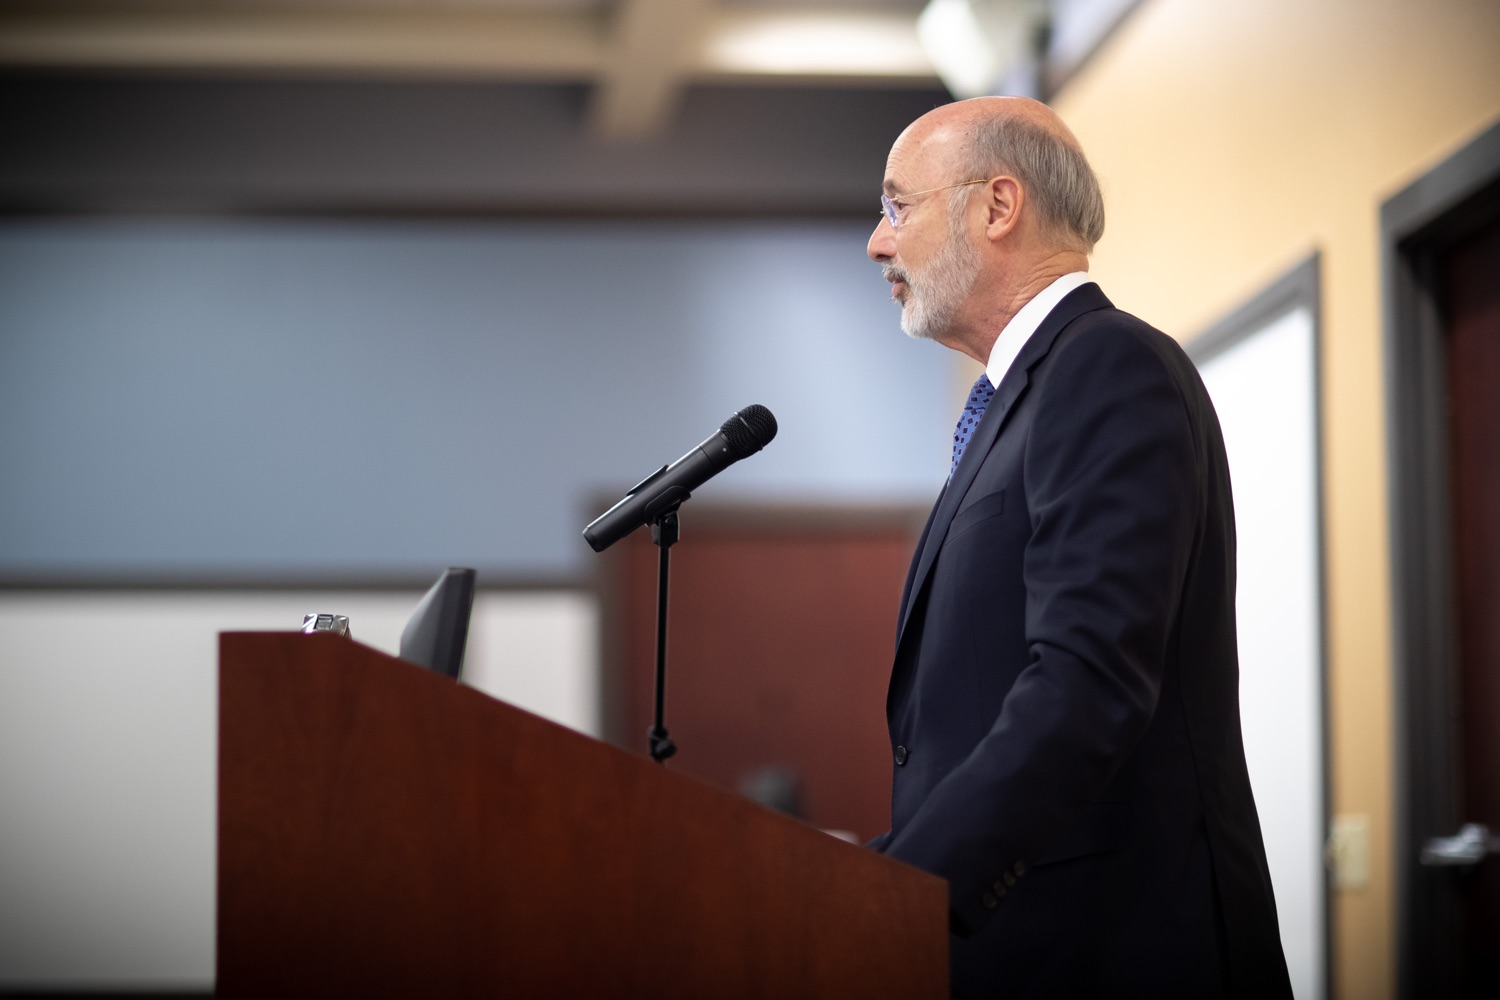 """<a href=""""https://filesource.wostreaming.net/commonwealthofpa/photo/17598_gov_charter_schools_dz_011.jpg"""" target=""""_blank"""">⇣Download Photo<br></a>Pennsylvania Governor Tom Wolf speaks about charter school reform at a meeting of the Pennsylvania Association of School Administrators.  Governor Tom Wolfs commonsense plan to improve the educational quality of charter schools and control rising costs will save nearly $280 million a year, the governor told the Pennsylvania Association of School Administrators today. The governor has a three-part plan to fix Pennsylvanias charter school law which is regarded as one of the worst in the nation.  - Harrisburg, PA. Friday, November 15, 2019."""